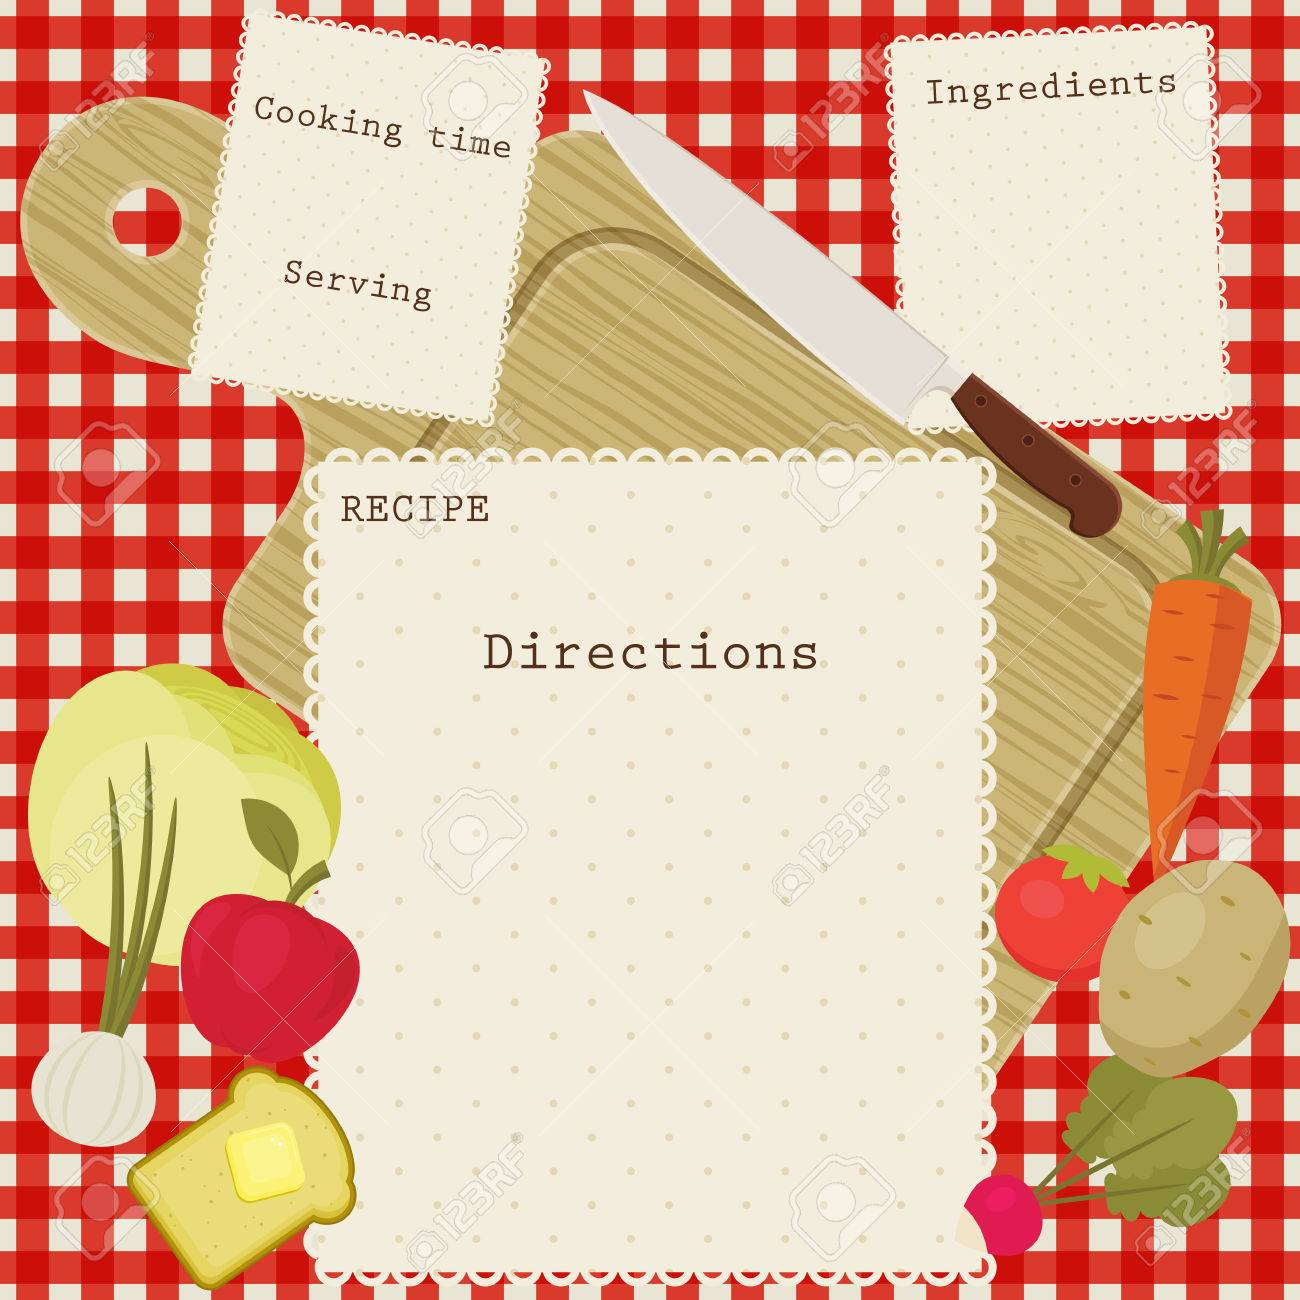 recipe card with space for directions, ingredients, cooking time and serving. Fruits and vegetables, cutting board and knife over checkered tablecloth. - 51335015